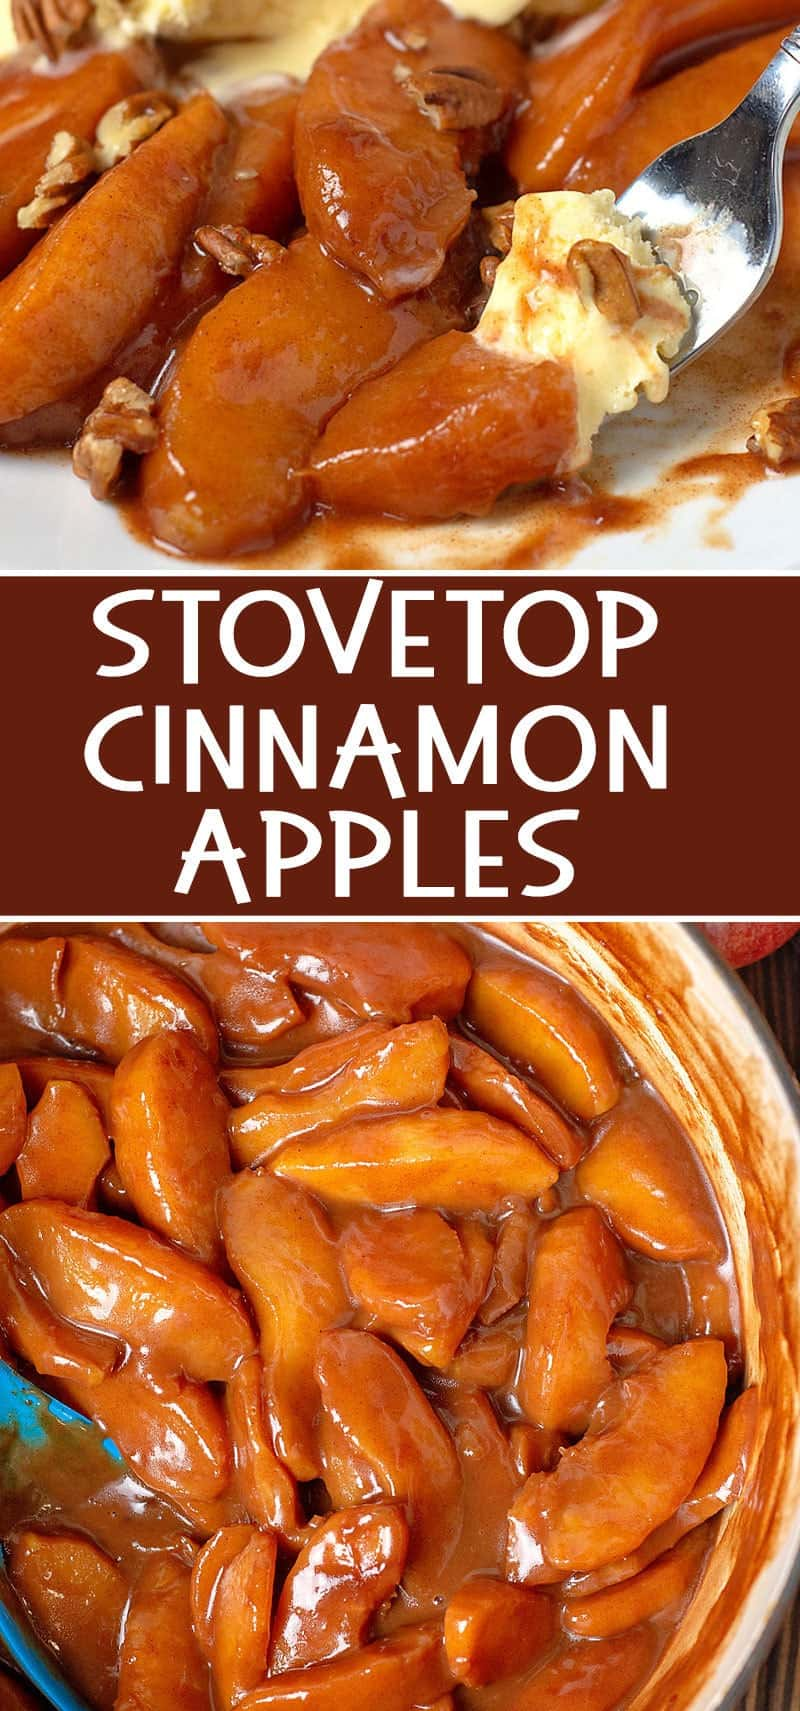 How to make cinnamon apples on the stovetop